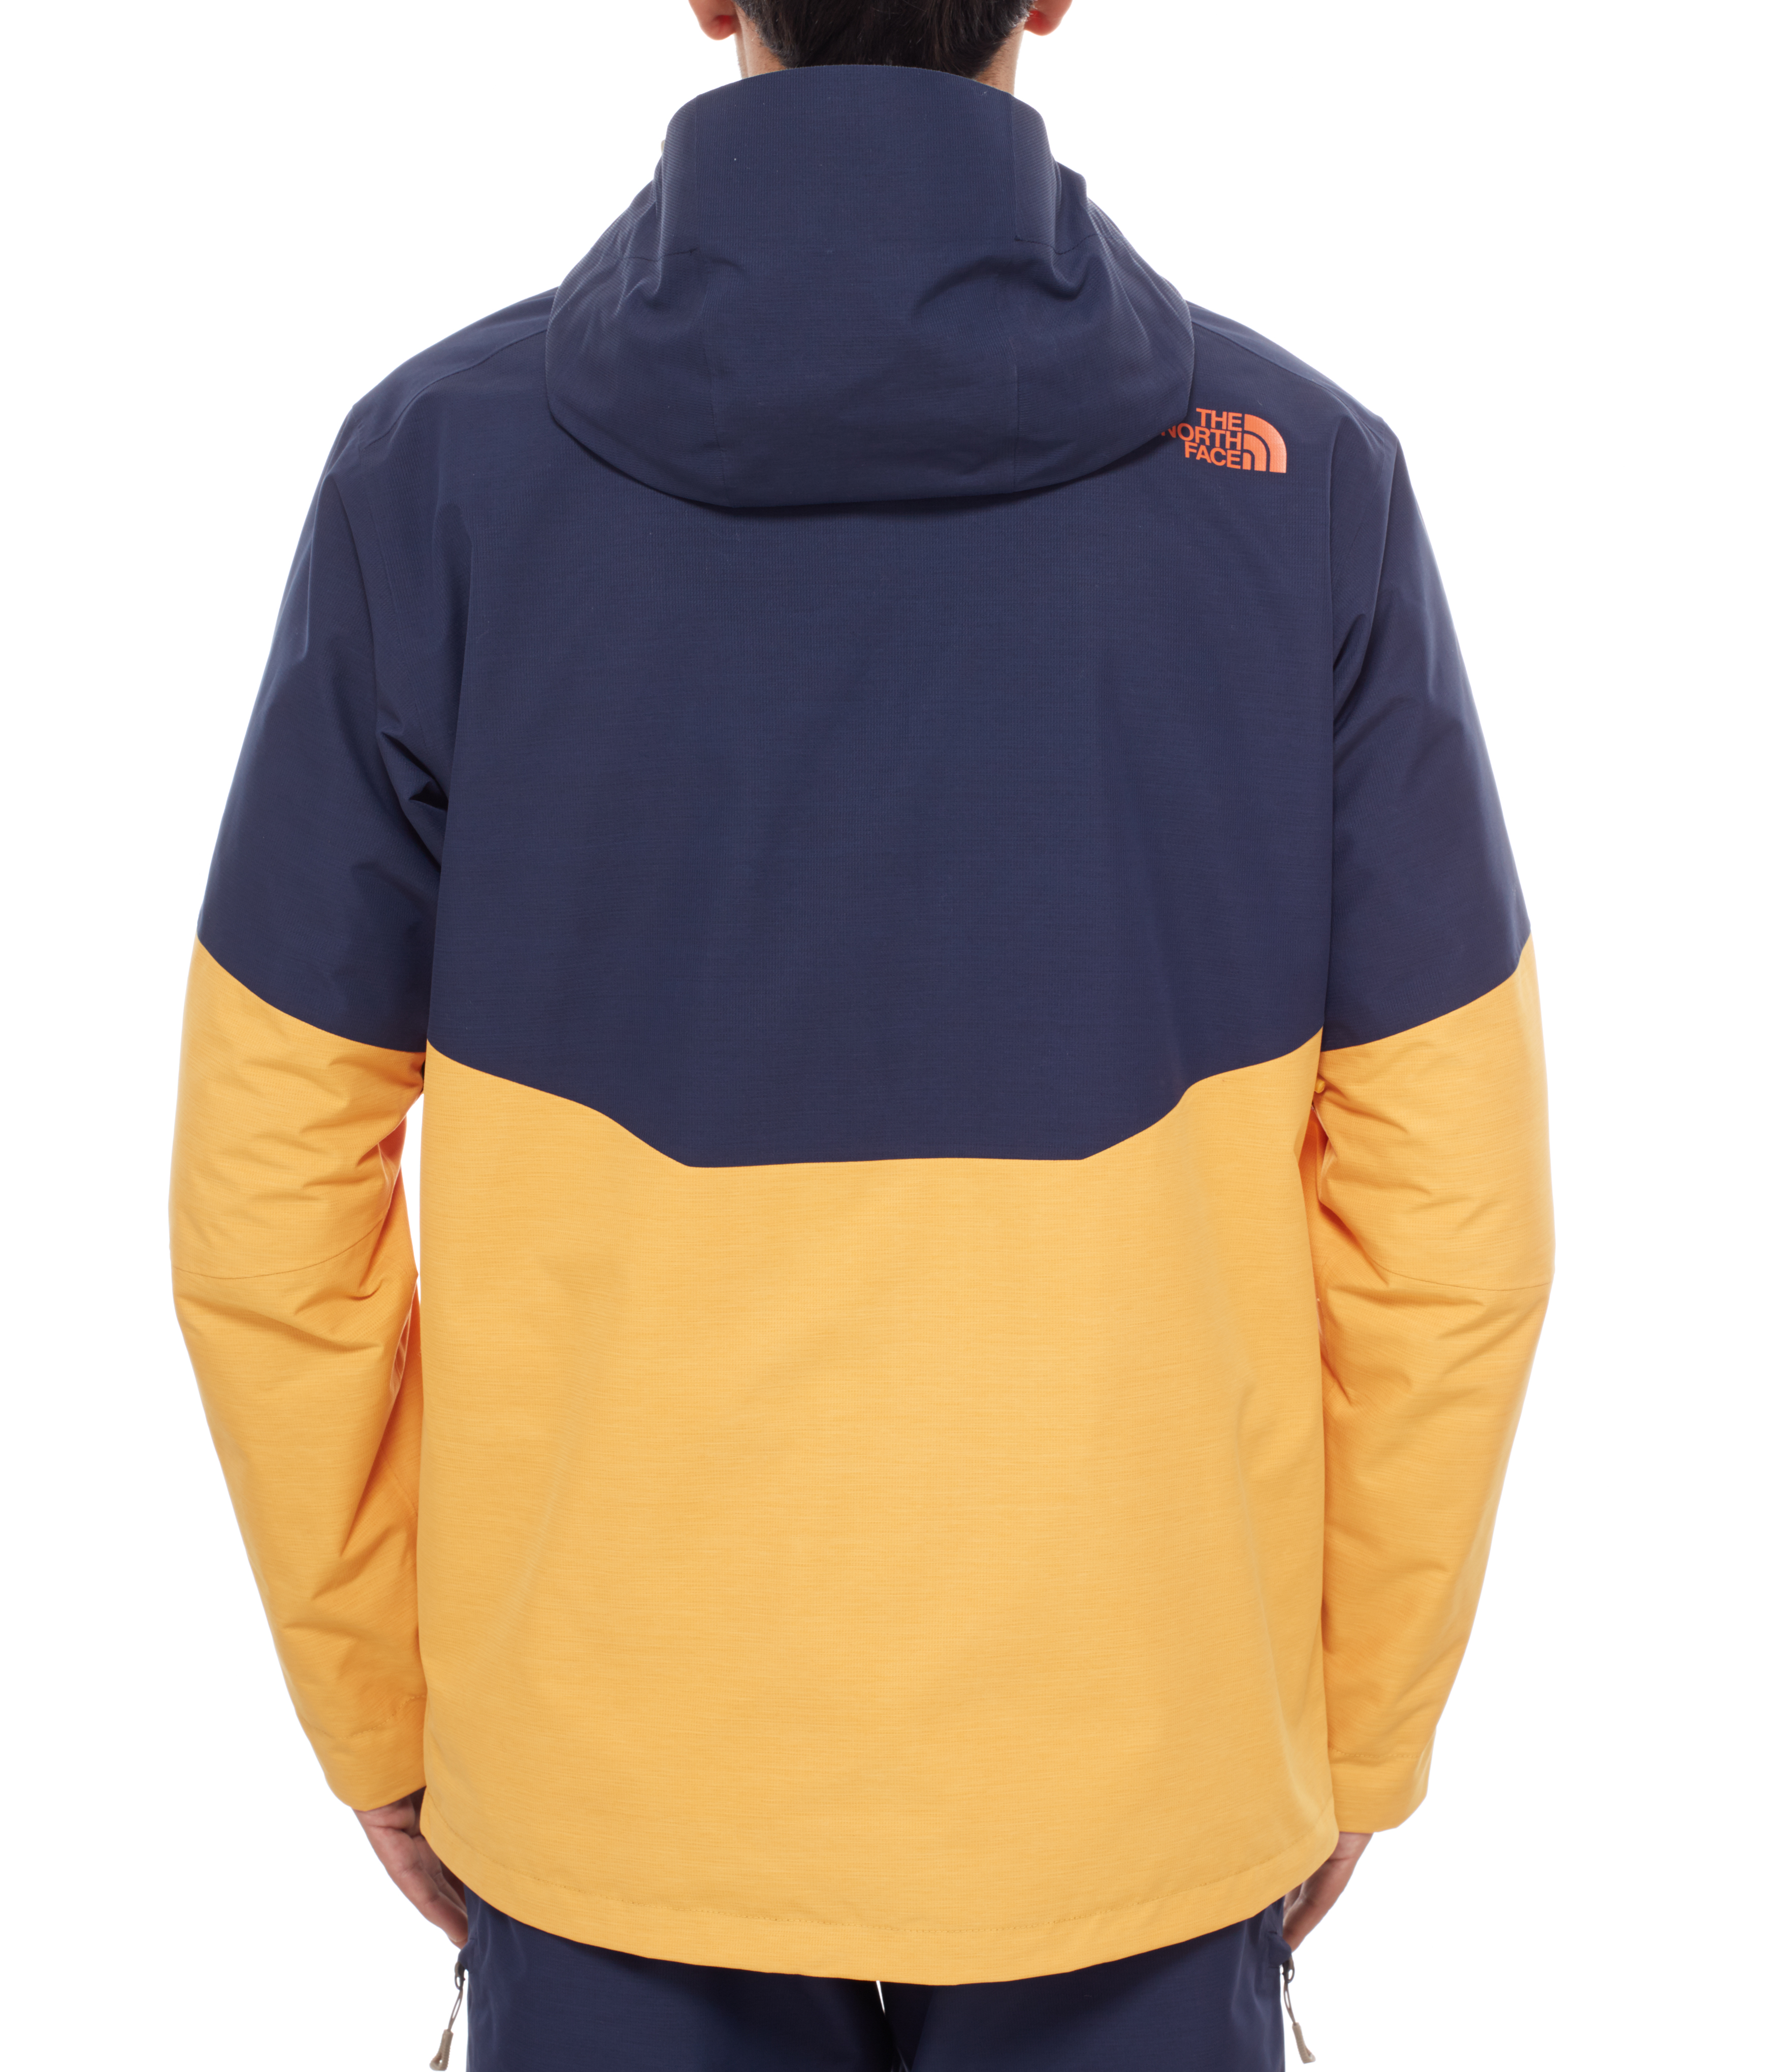 b3507d980057 new arrivals the north face nfz insulated jacket 64f11 095ef